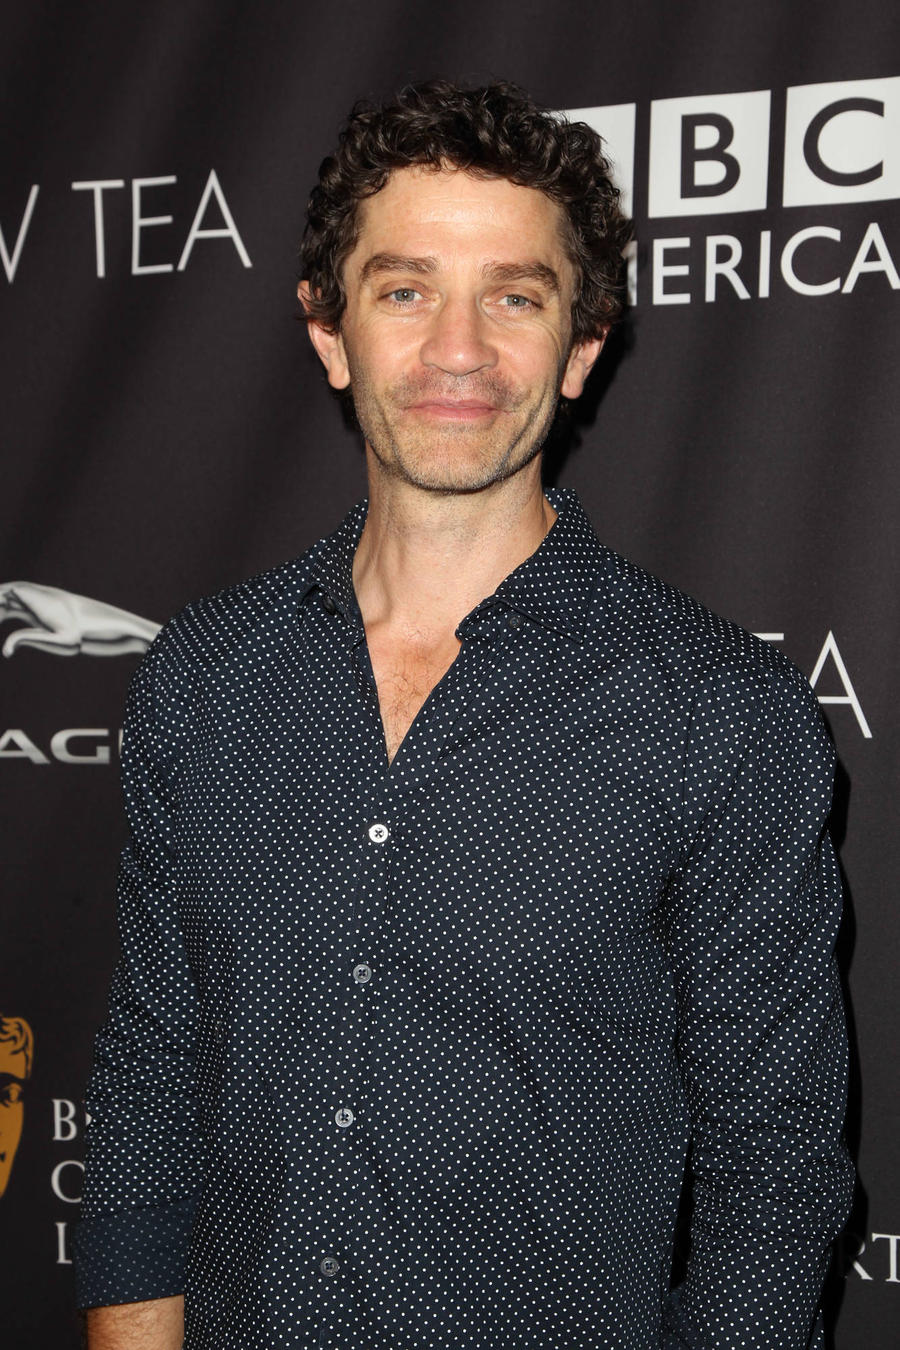 James Frain To Play Spock's Dad In New Star Trek Series